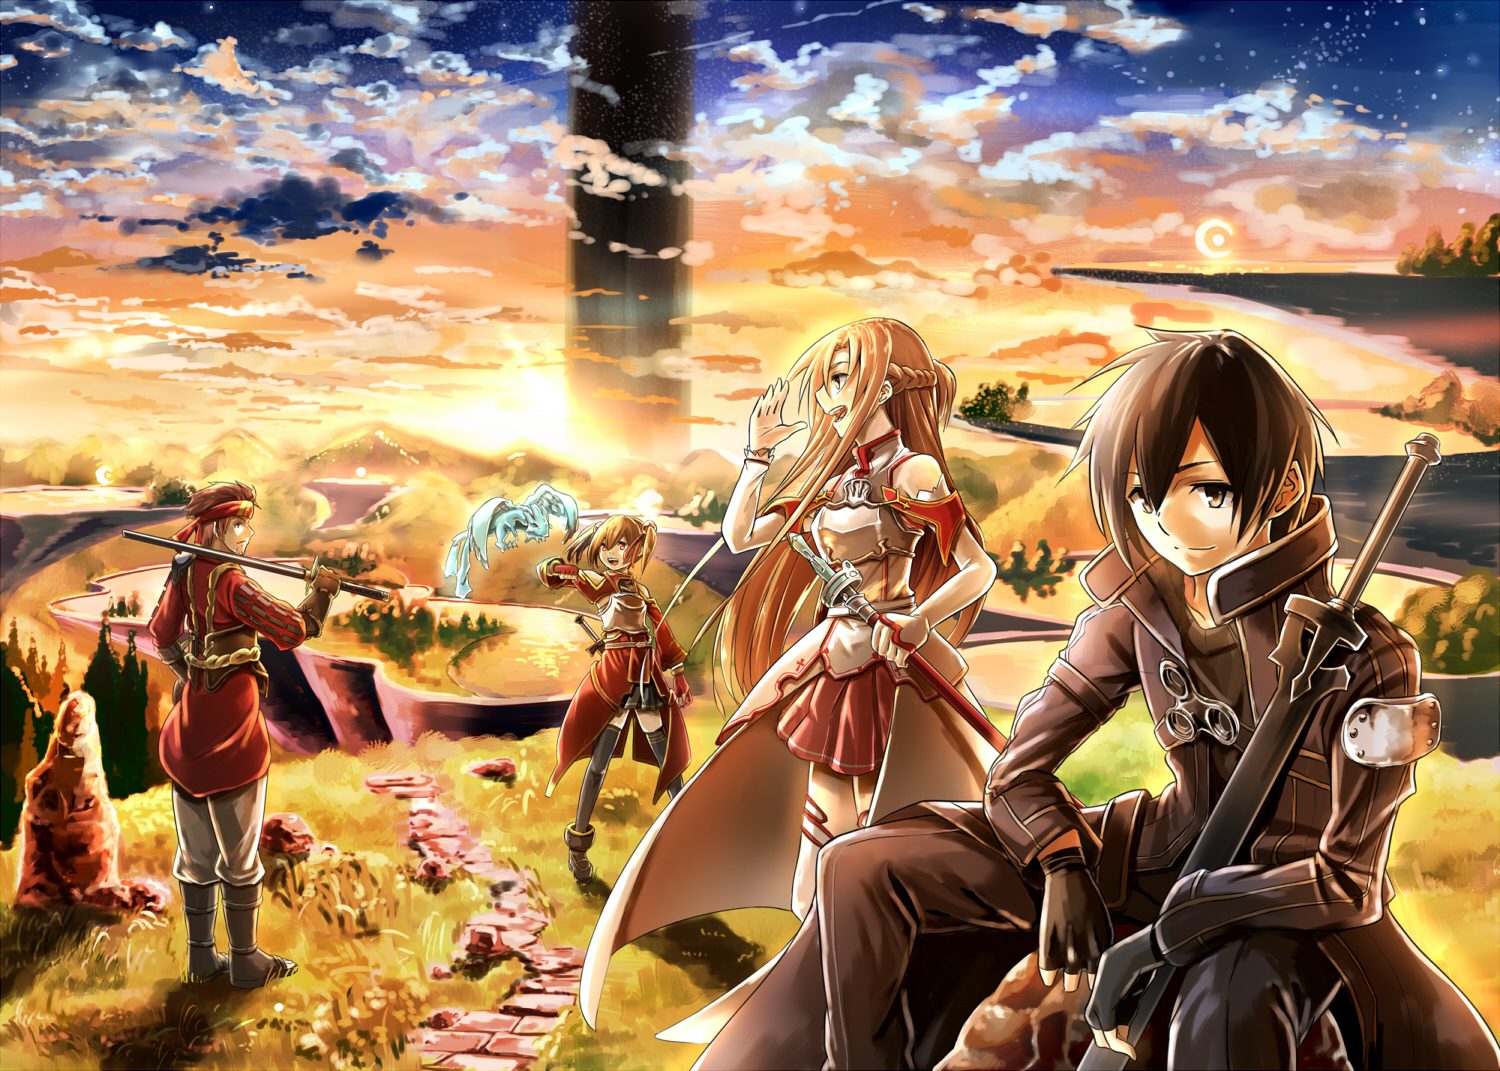 Sword Art Online Background: Sword Art Online Wallpaper And Background Image